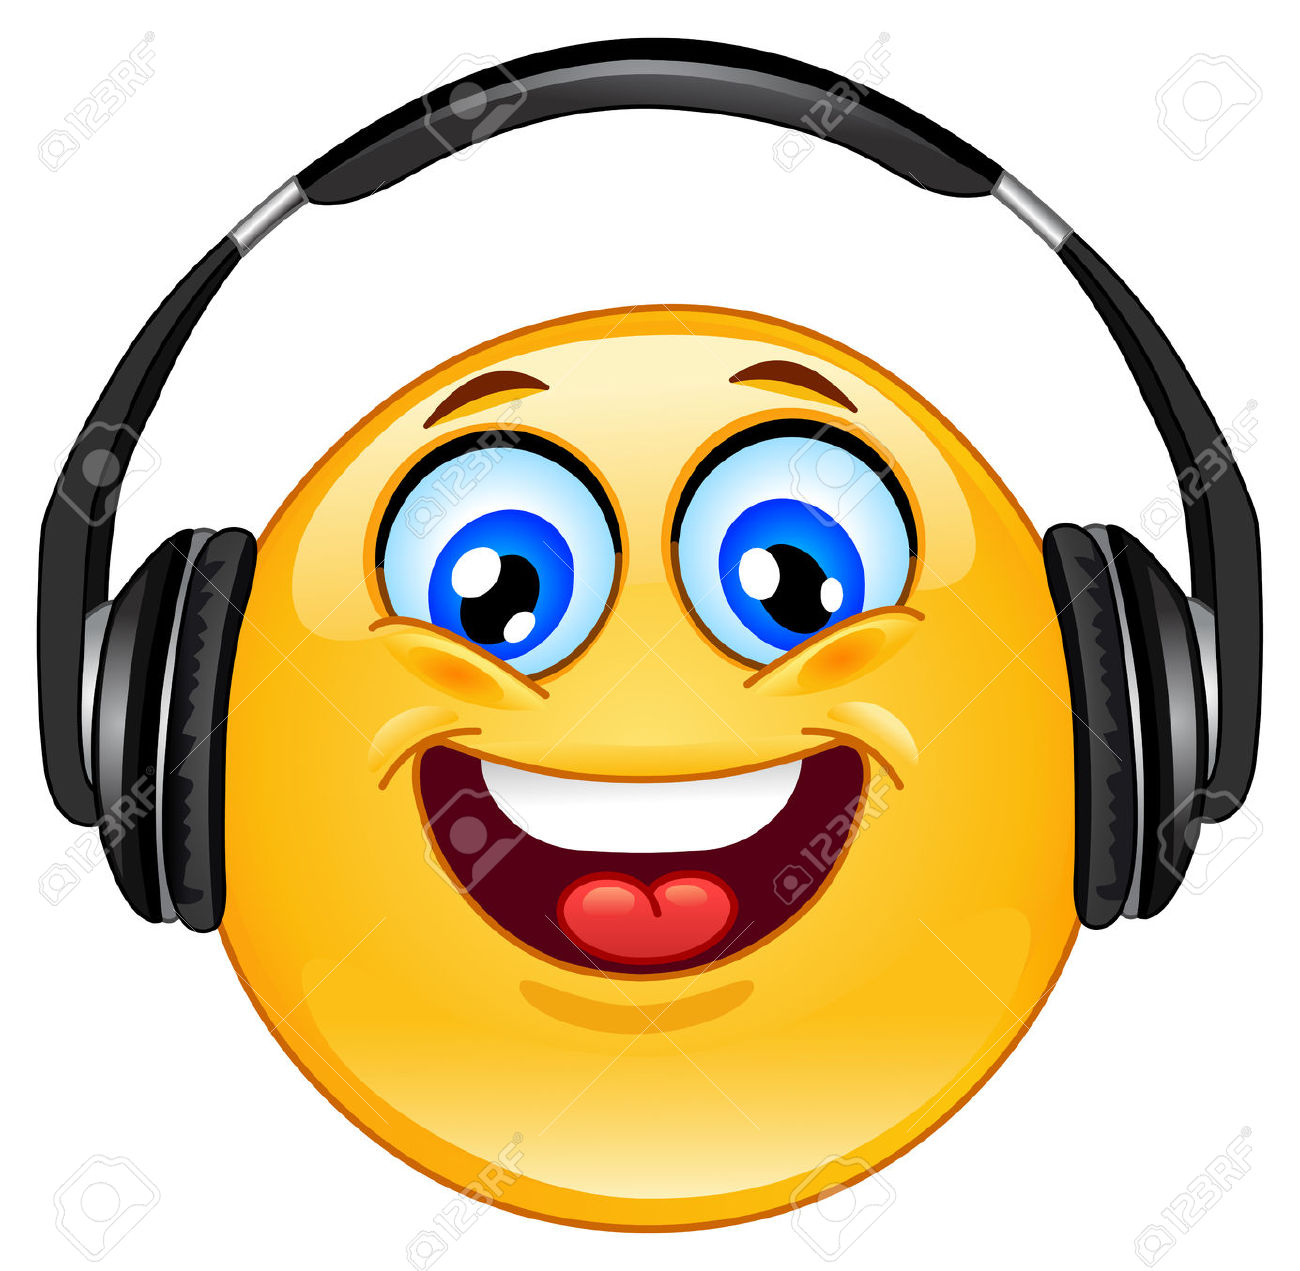 Headphone clipart emoticon  art smiley clip Google